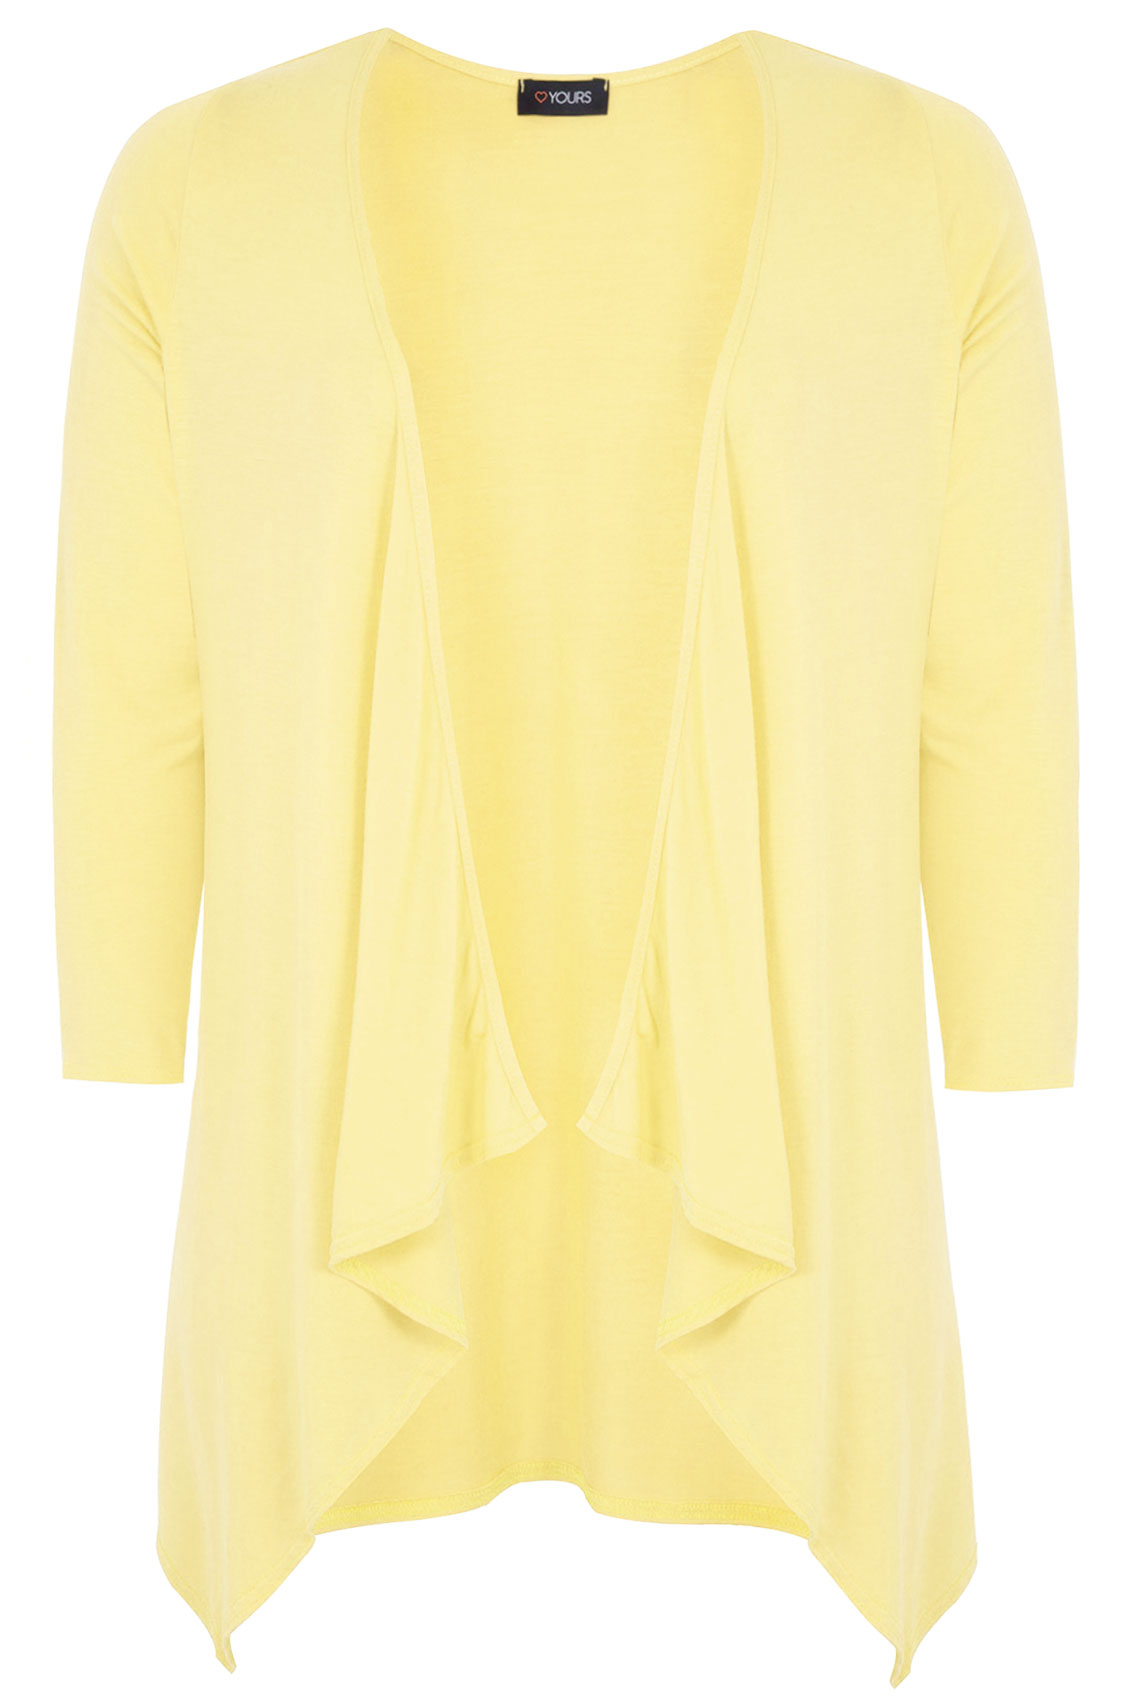 Lemon Yellow Waterfall Edge to Edge Cardigan Plus size 16,18,20,22 ...